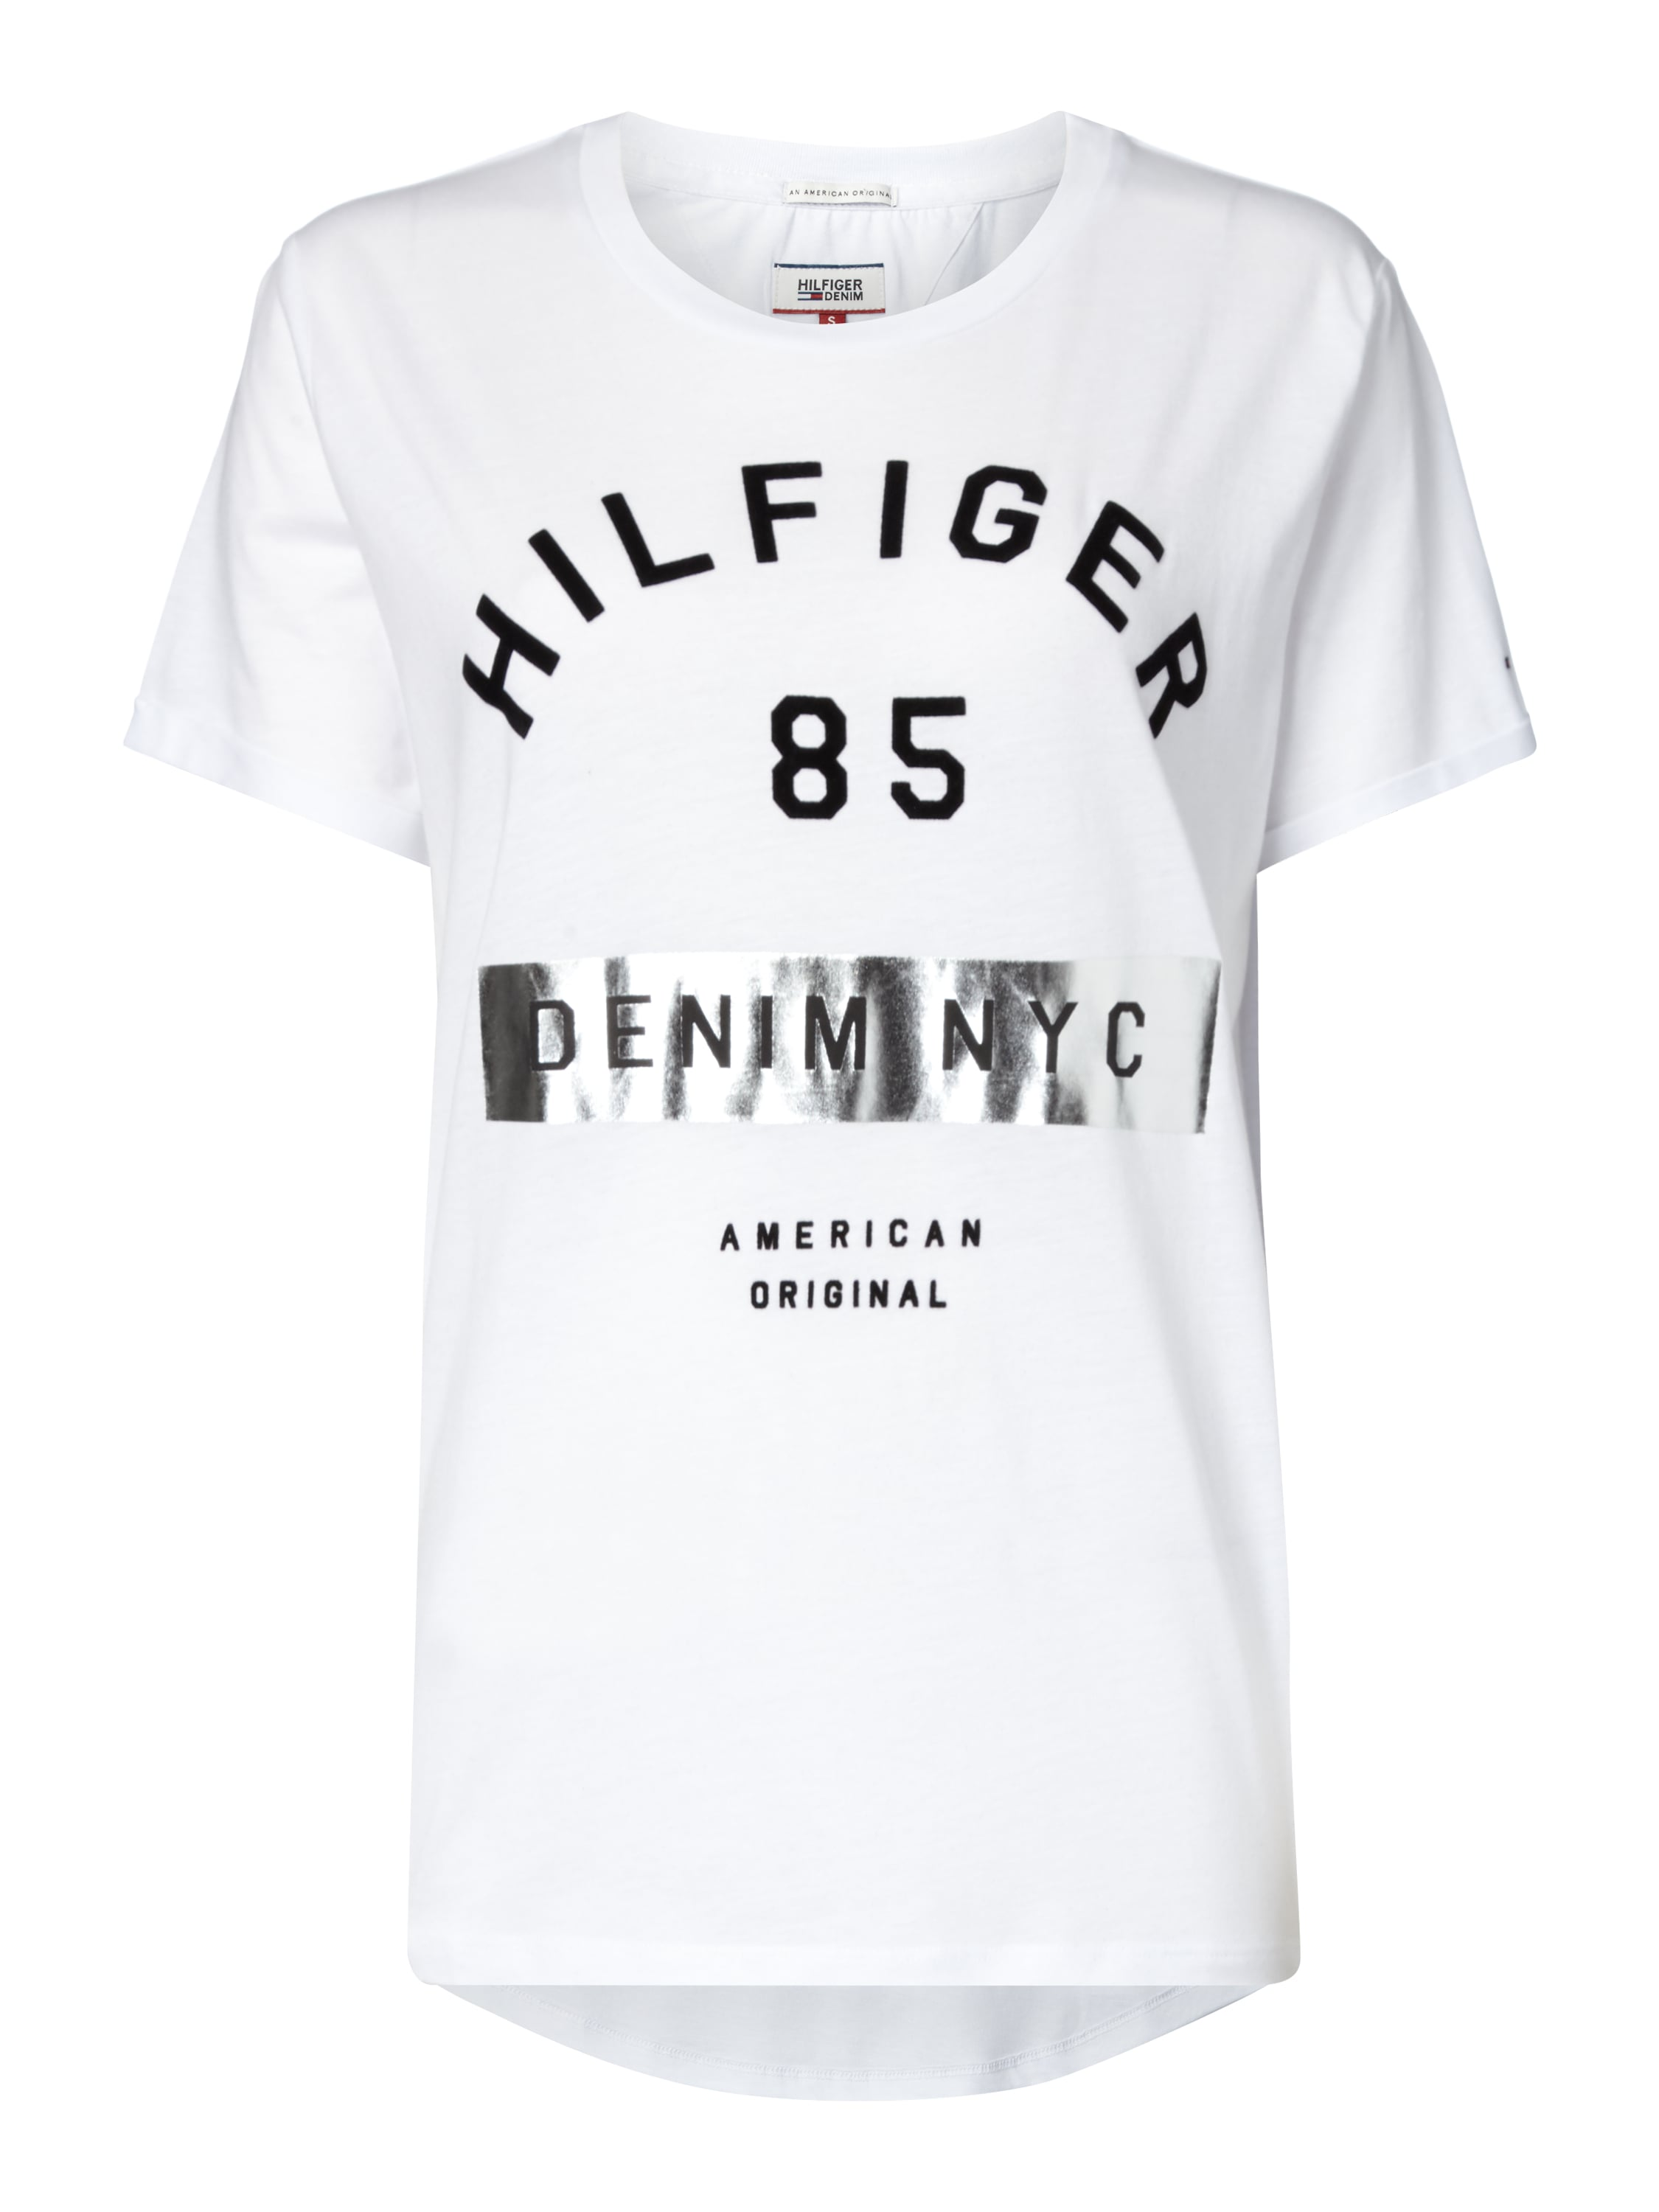 hilfiger denim t shirt mit gro em logo print in wei. Black Bedroom Furniture Sets. Home Design Ideas